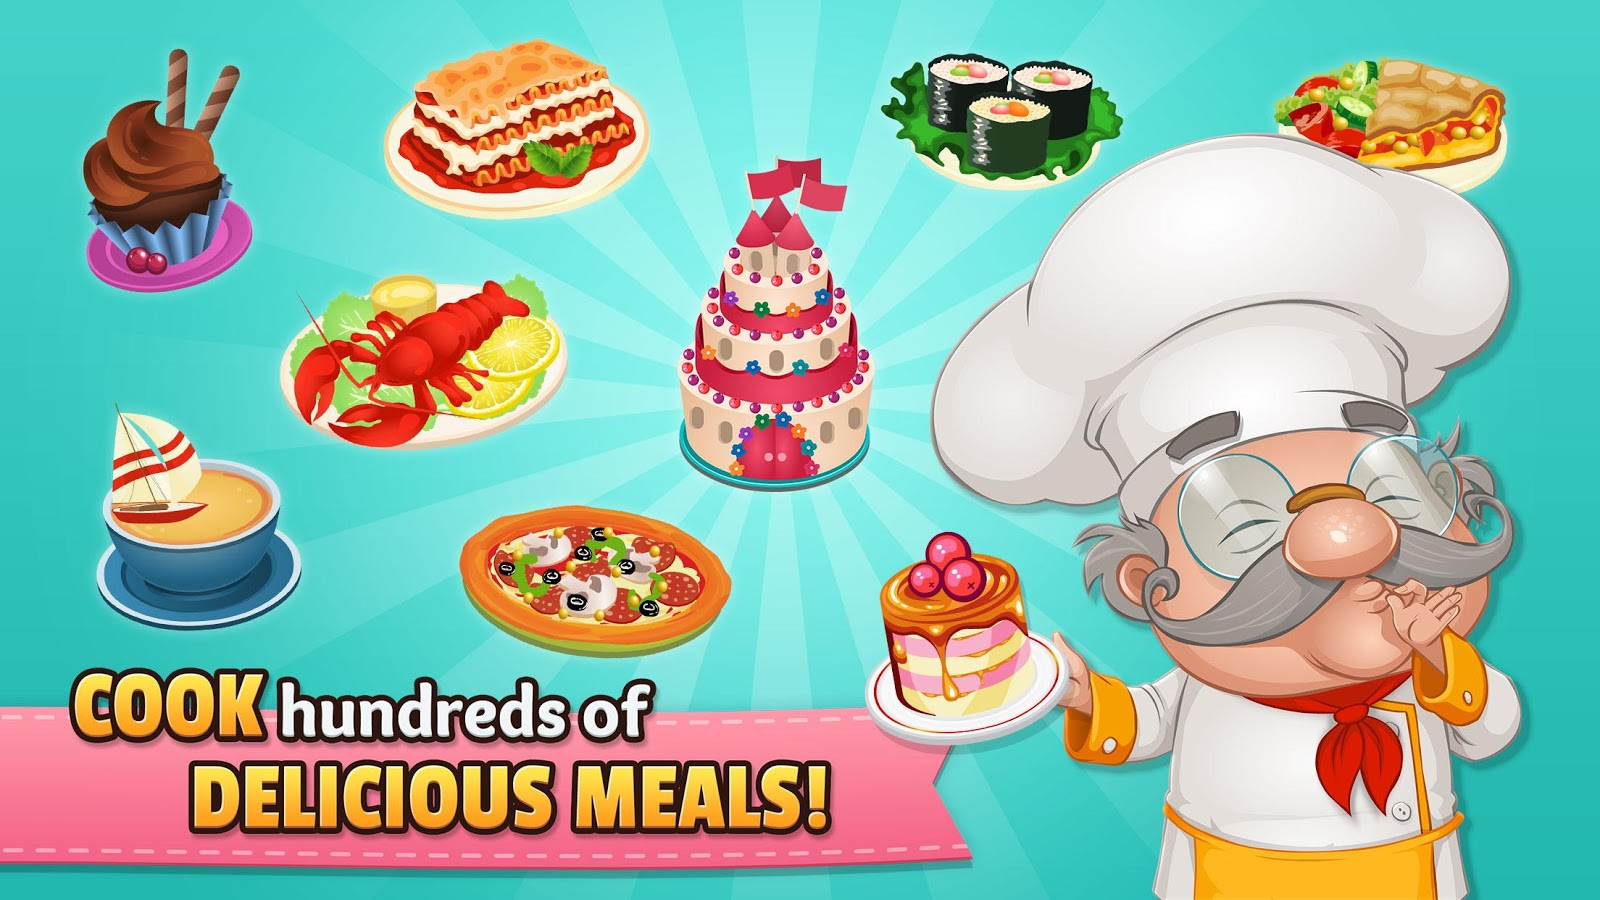 Cafeland - World Kitchen 1.9.2 APK Download - Android Casual Games